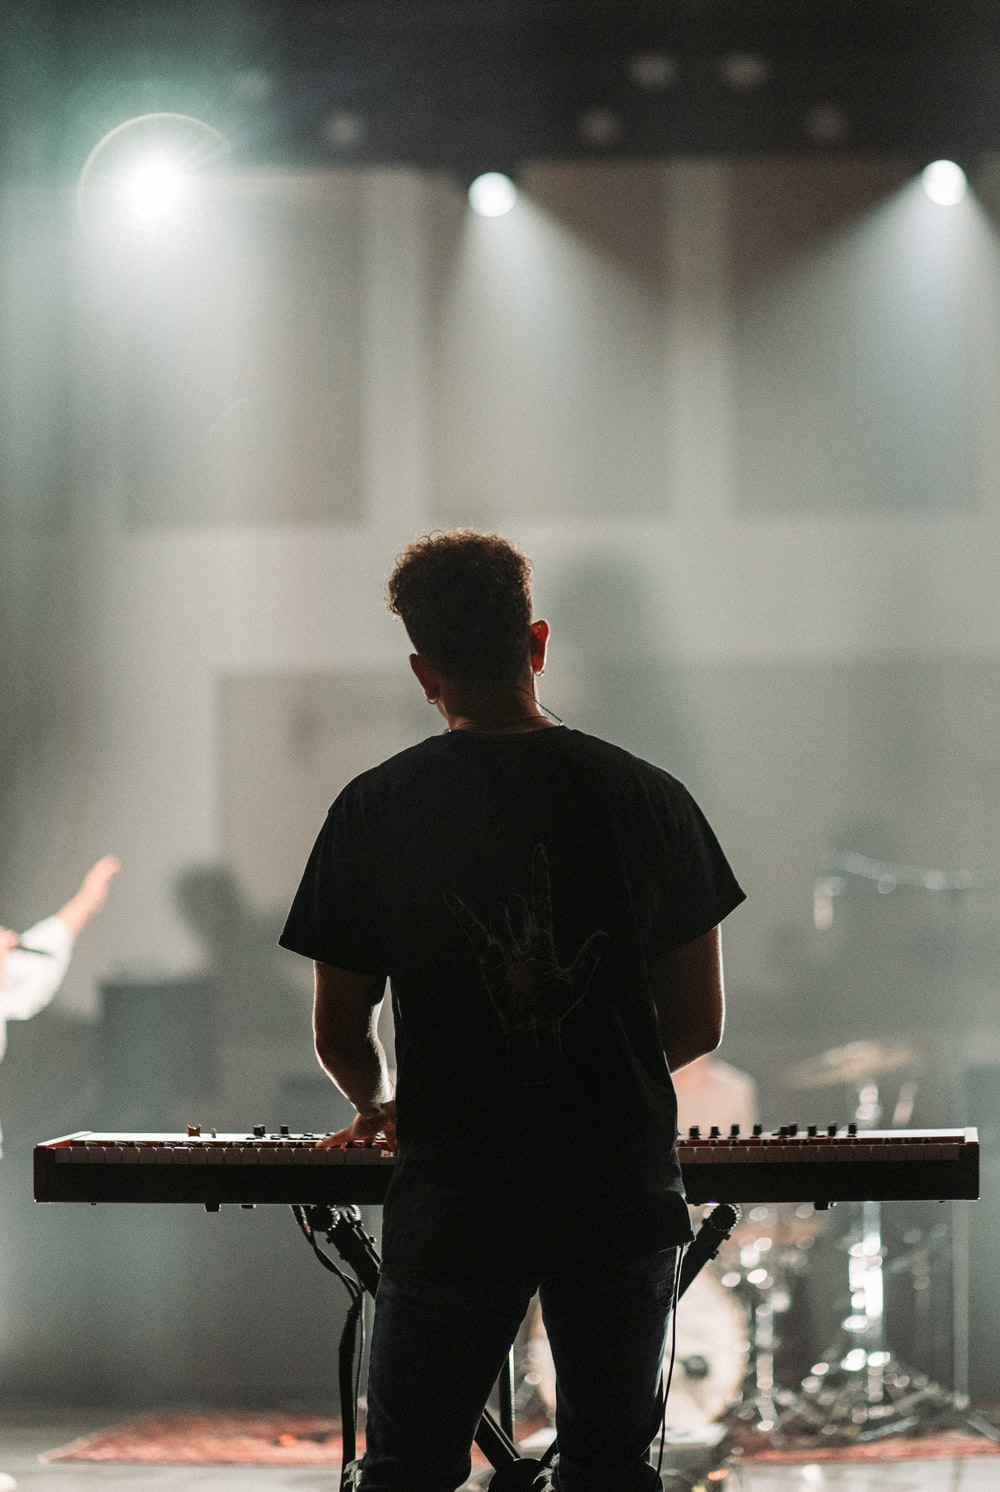 man in black crew neck t-shirt playing piano